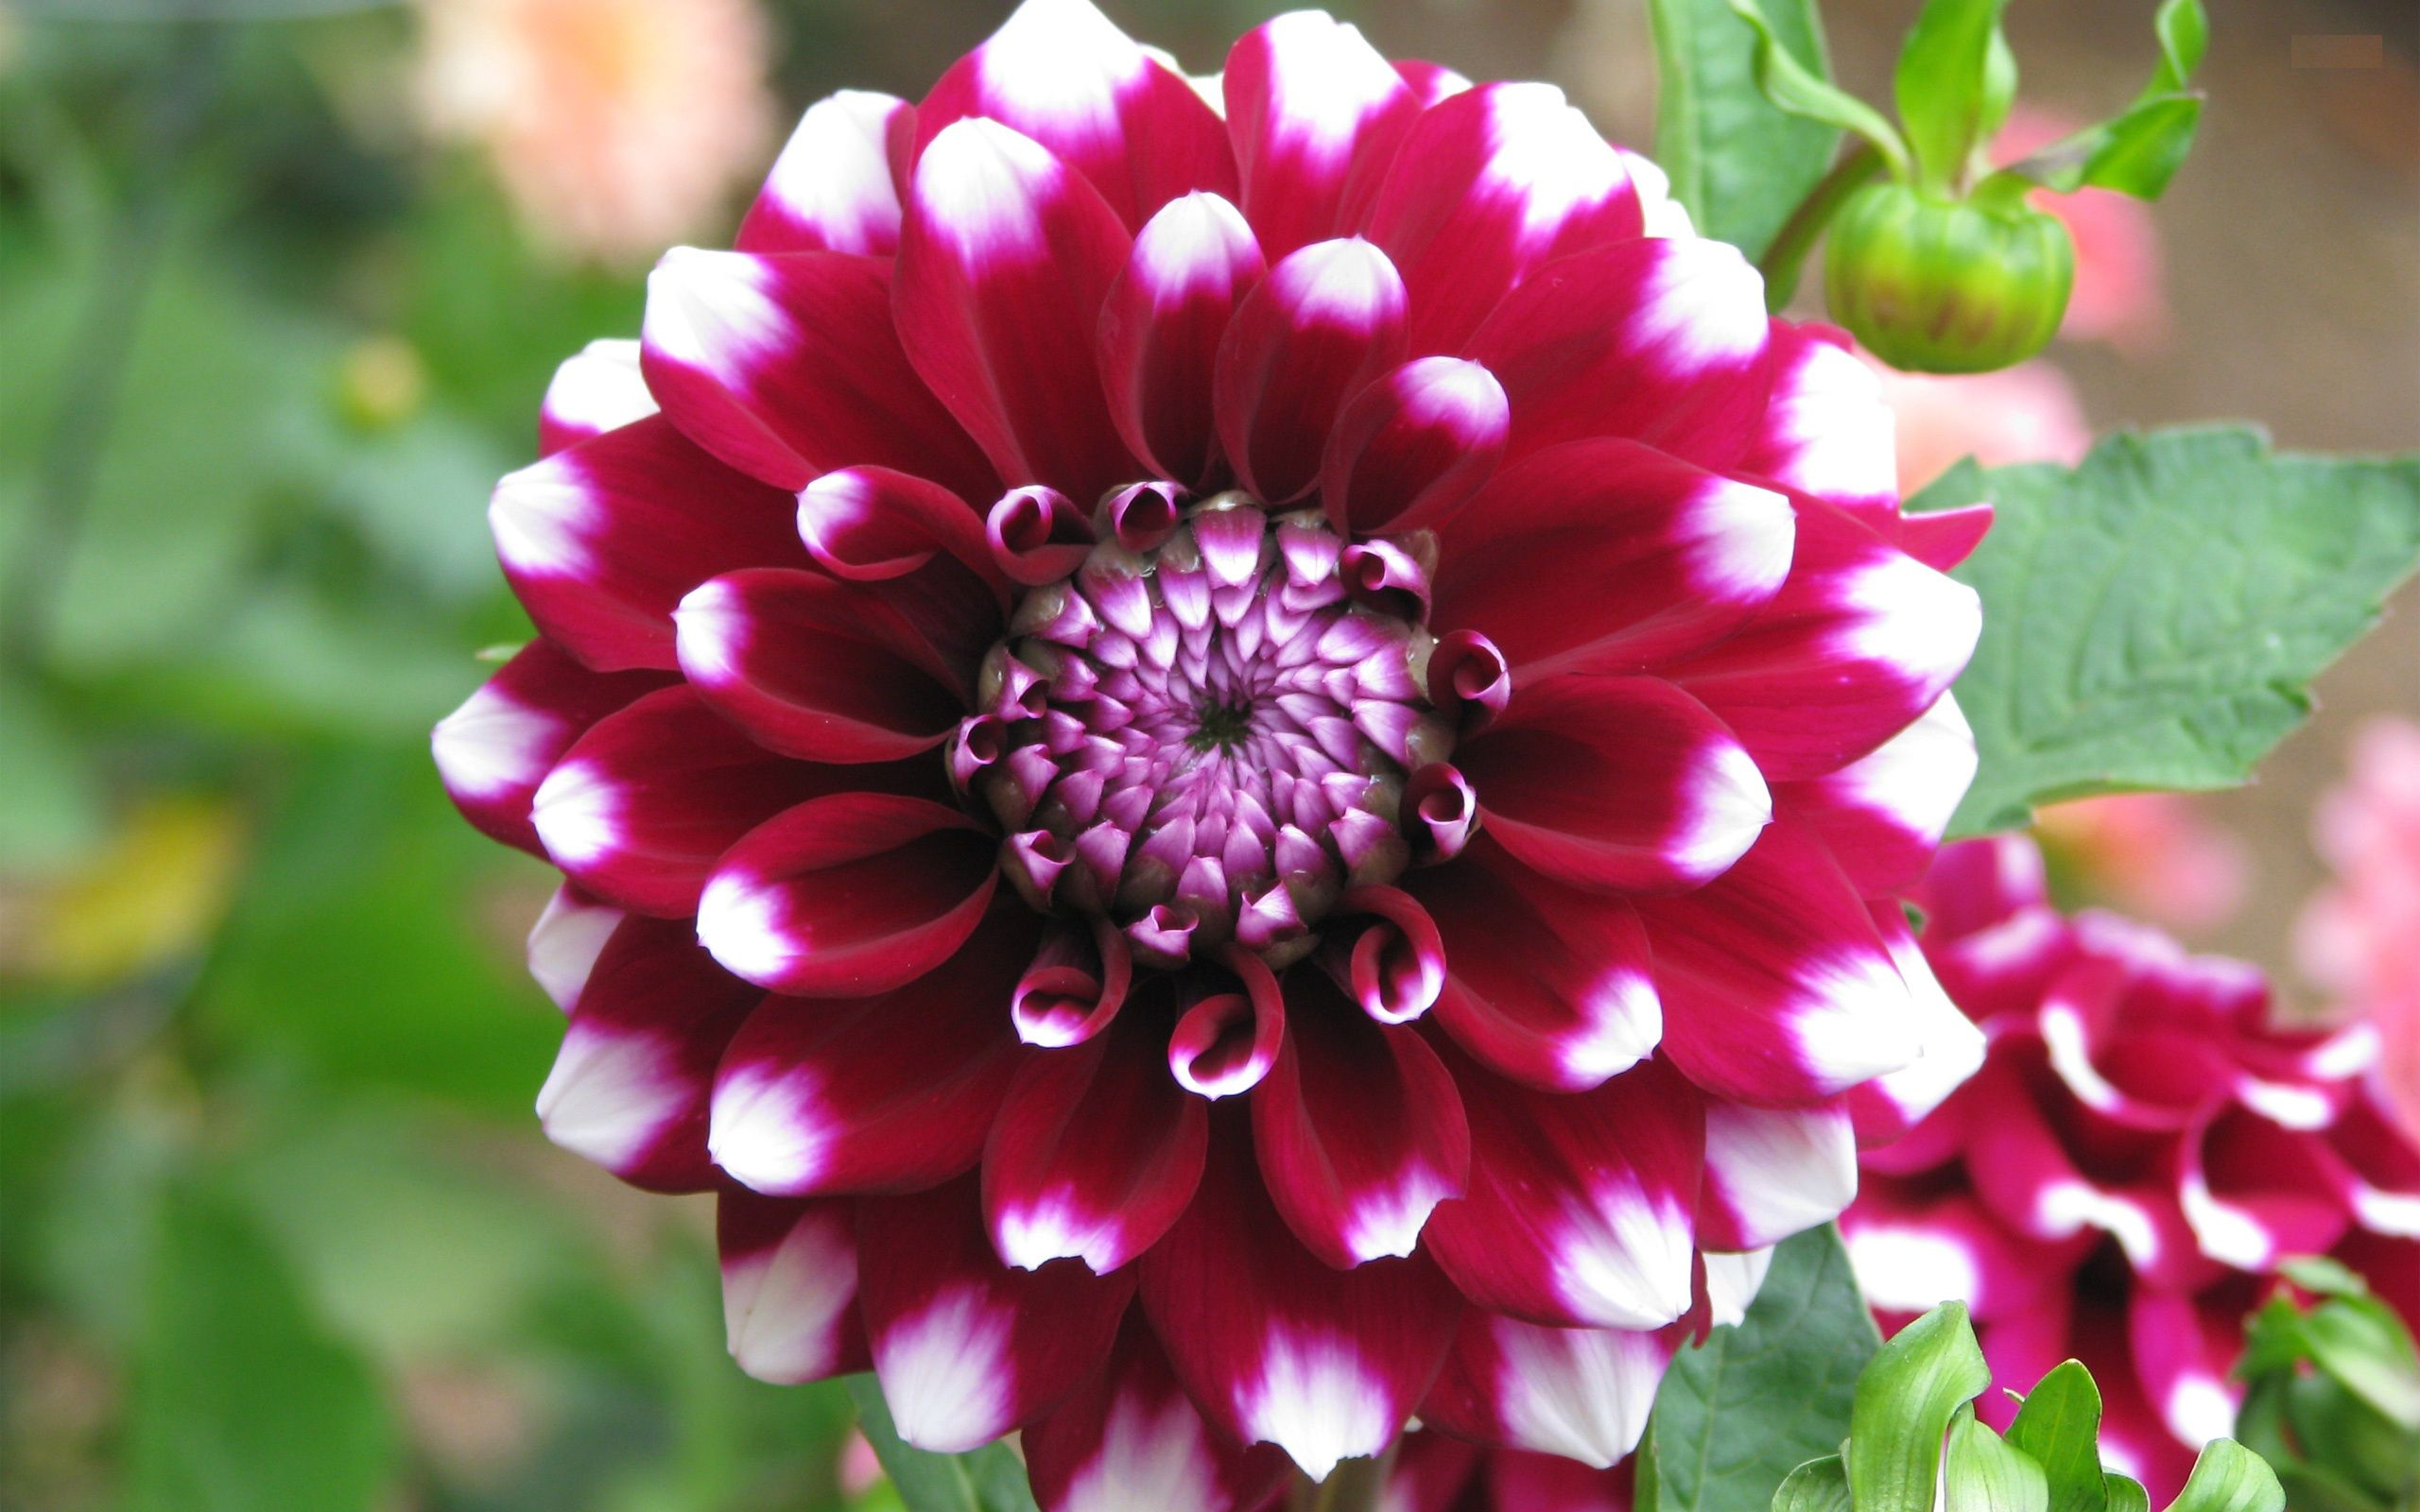 Dahlia Flower Hd Wallpaper Dahlia Flower Images Cool Wallpapers Dahlia Flower Azalea Flower Beautiful Flowers Wallpapers